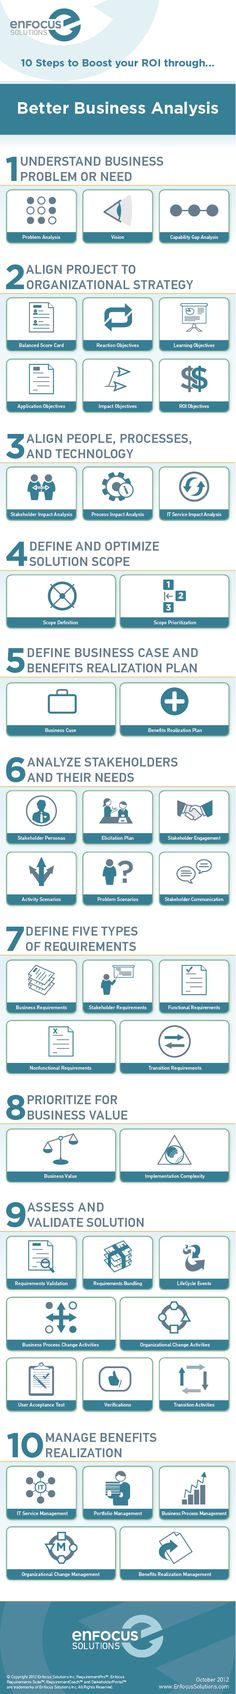 We have developed an infographic that defines 10 key steps that organizations can take to boost ROI on enterprise projects through better business analysis.